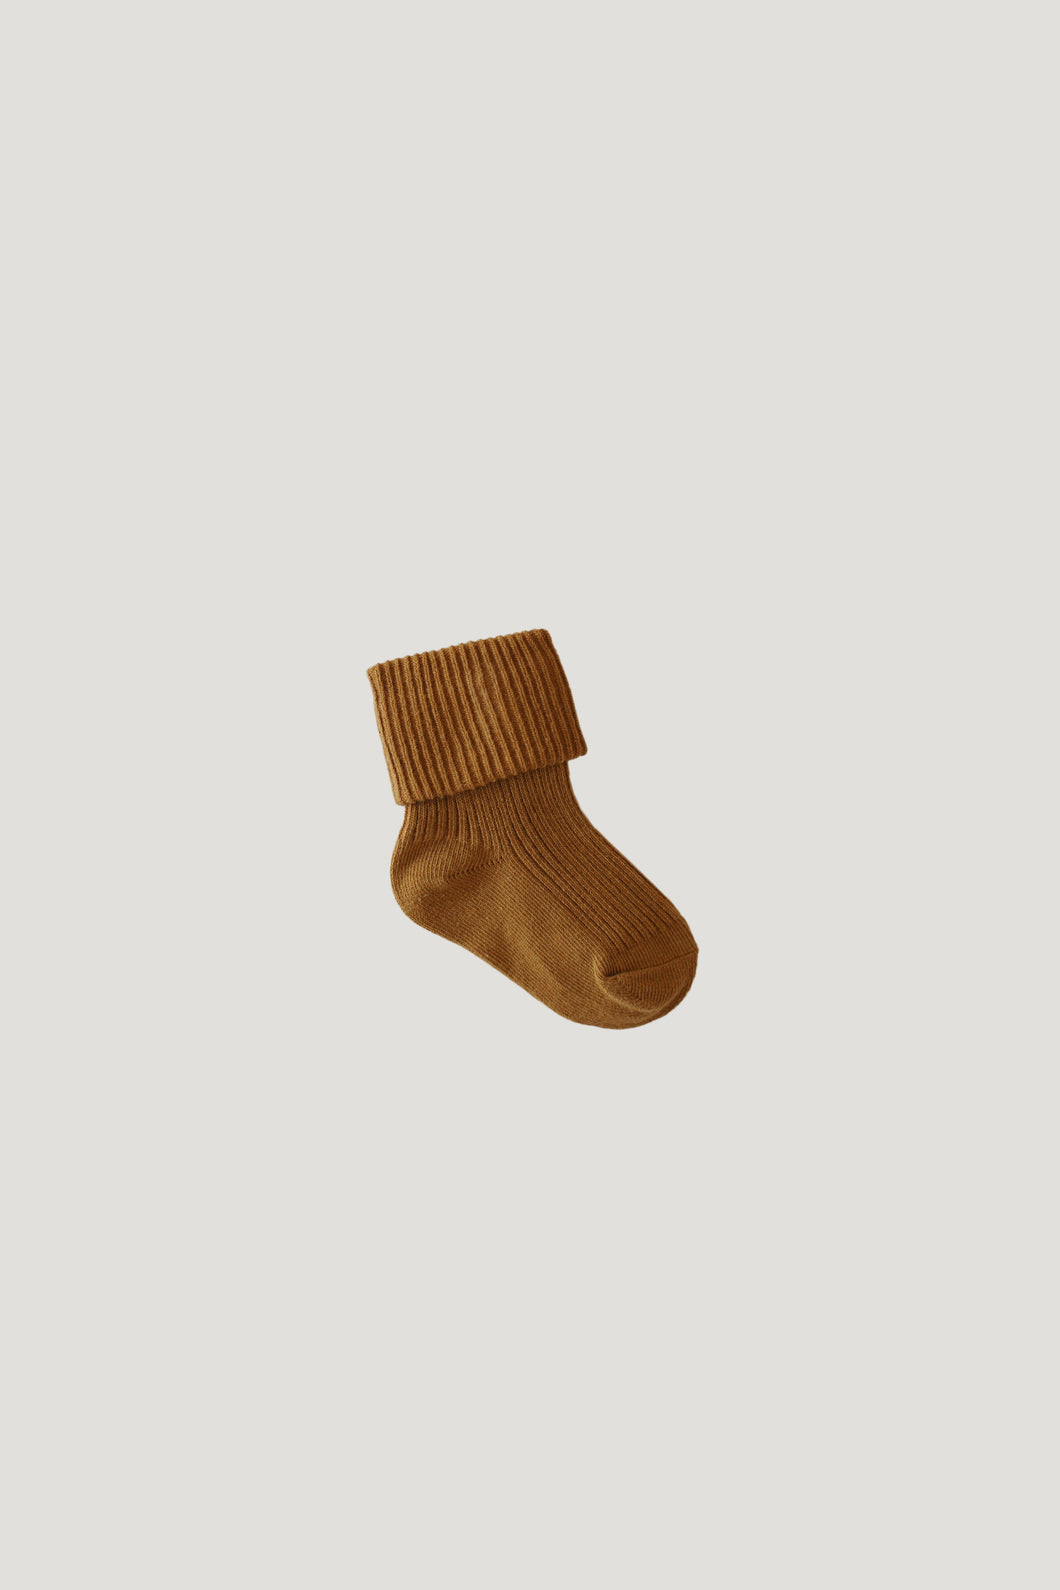 Jamie Kay Rib Socks - Golden